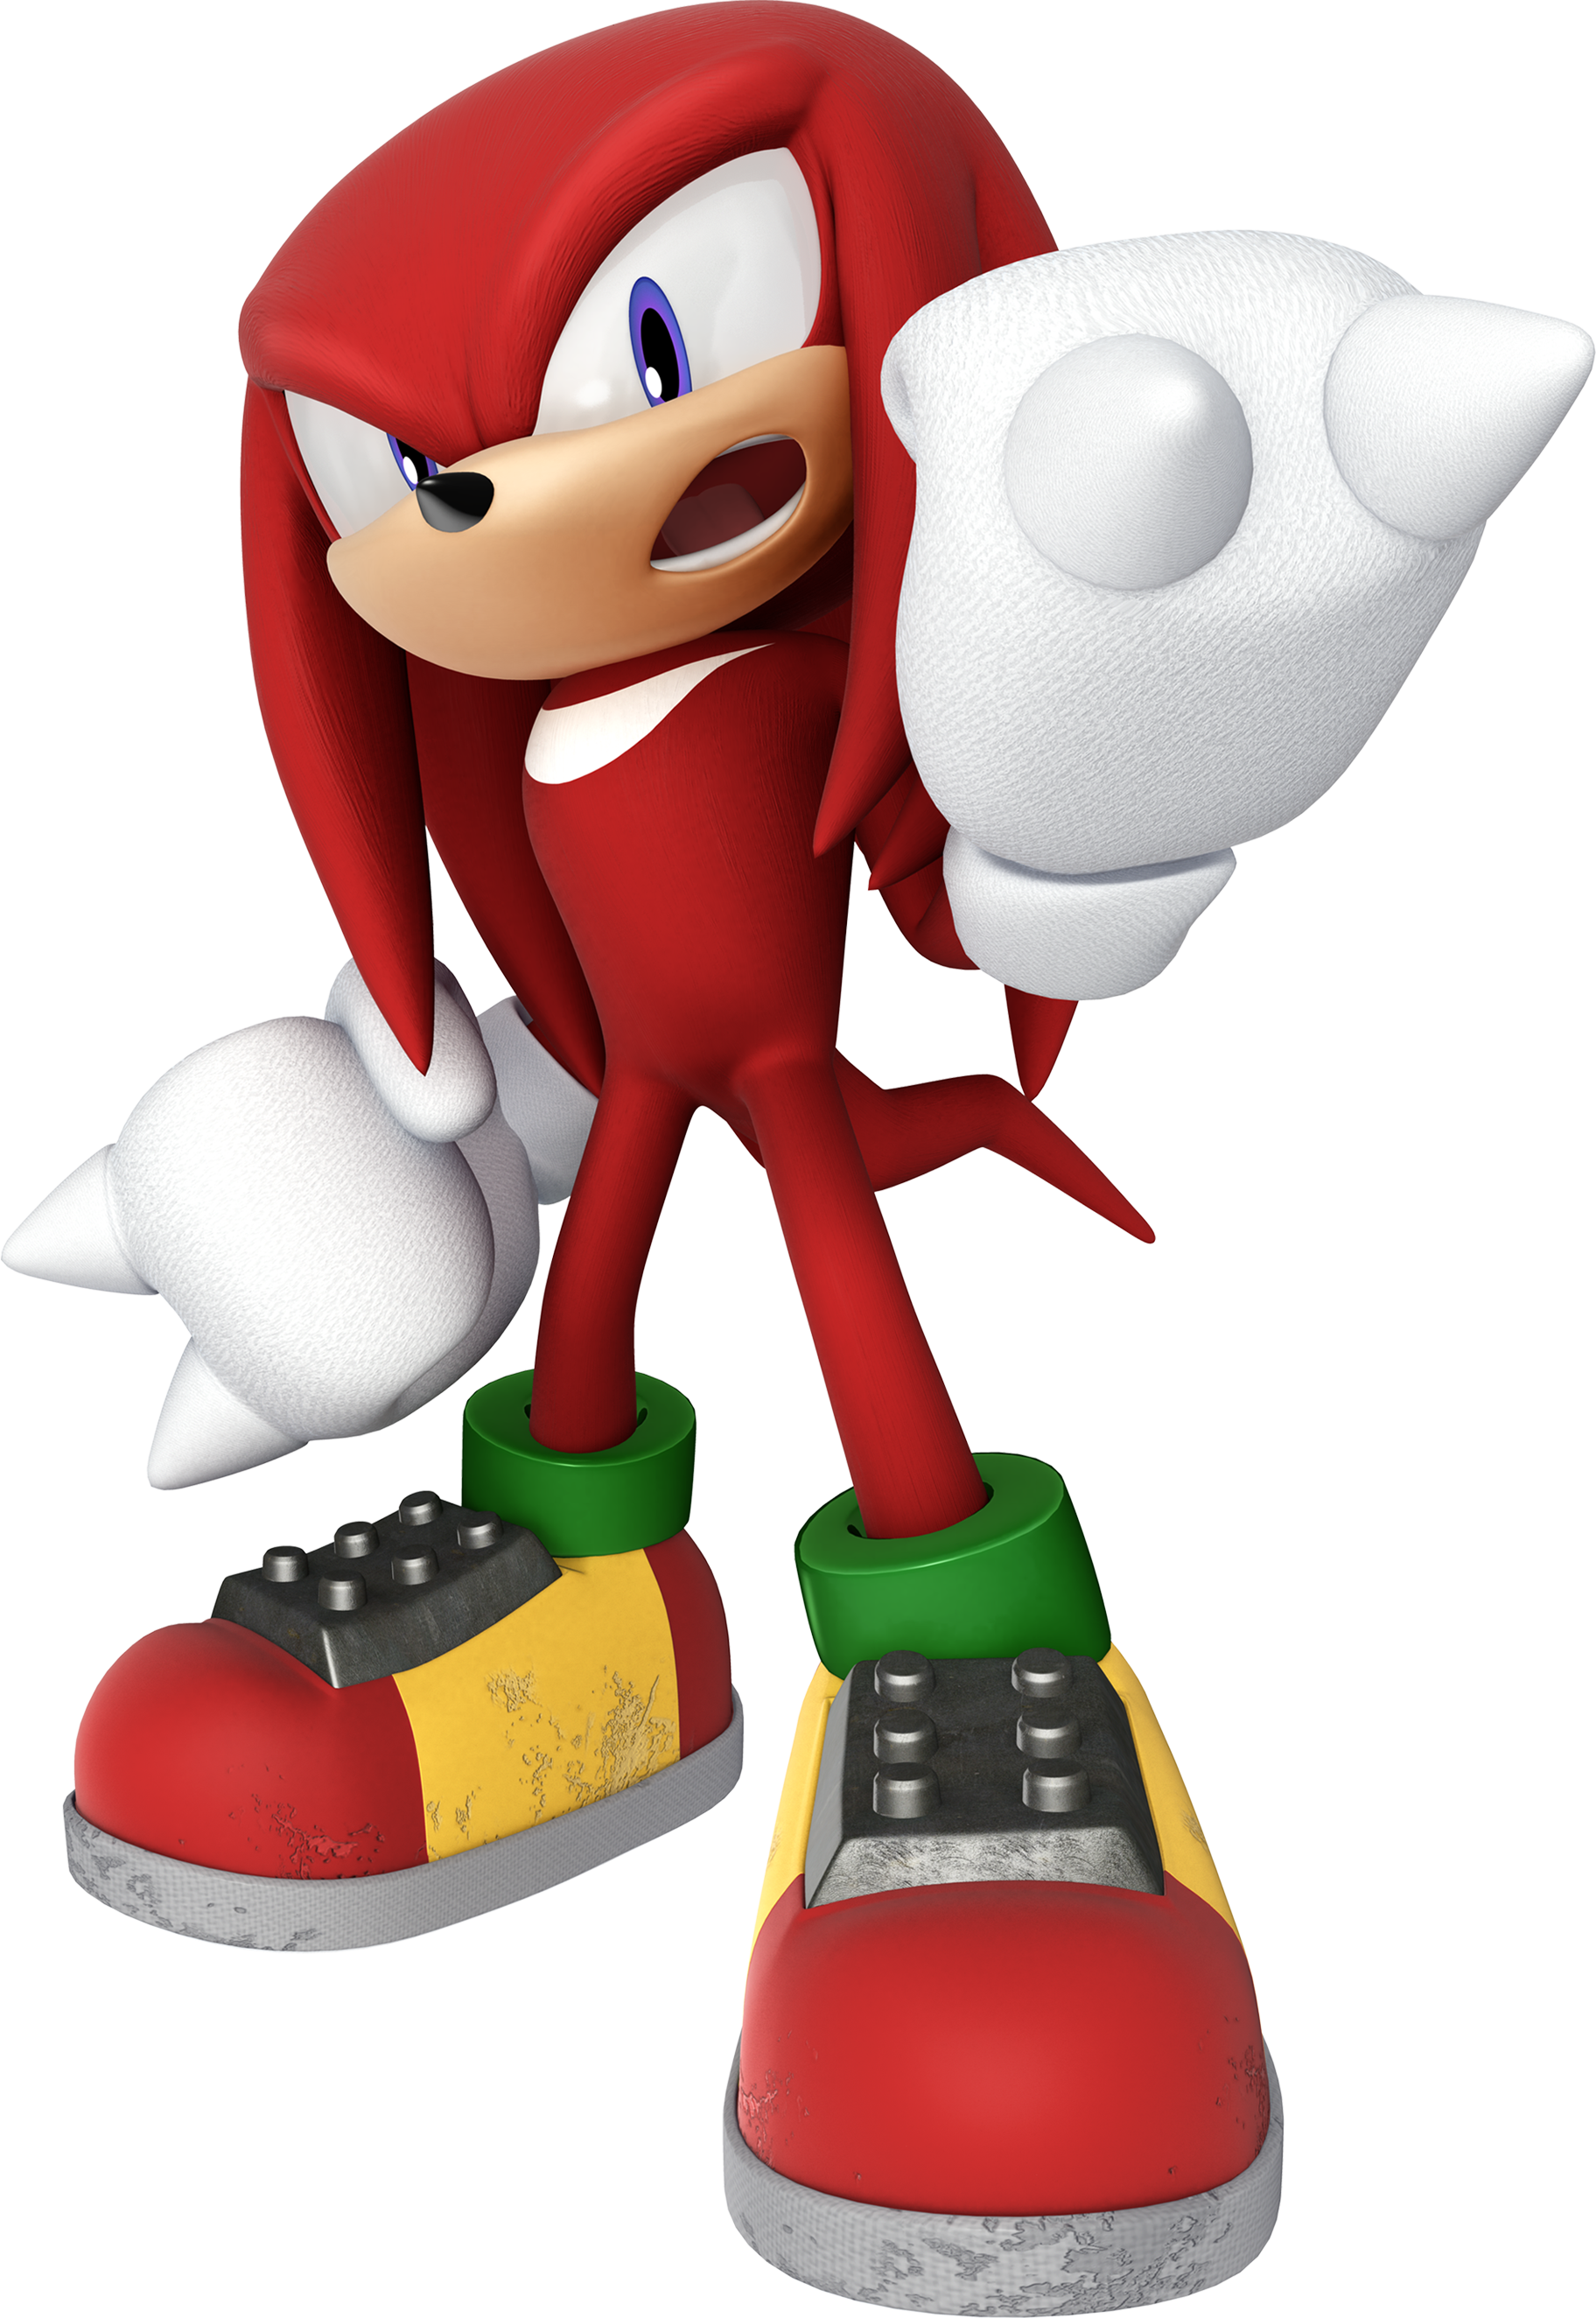 Knuckles Battles | DReager1's Blog